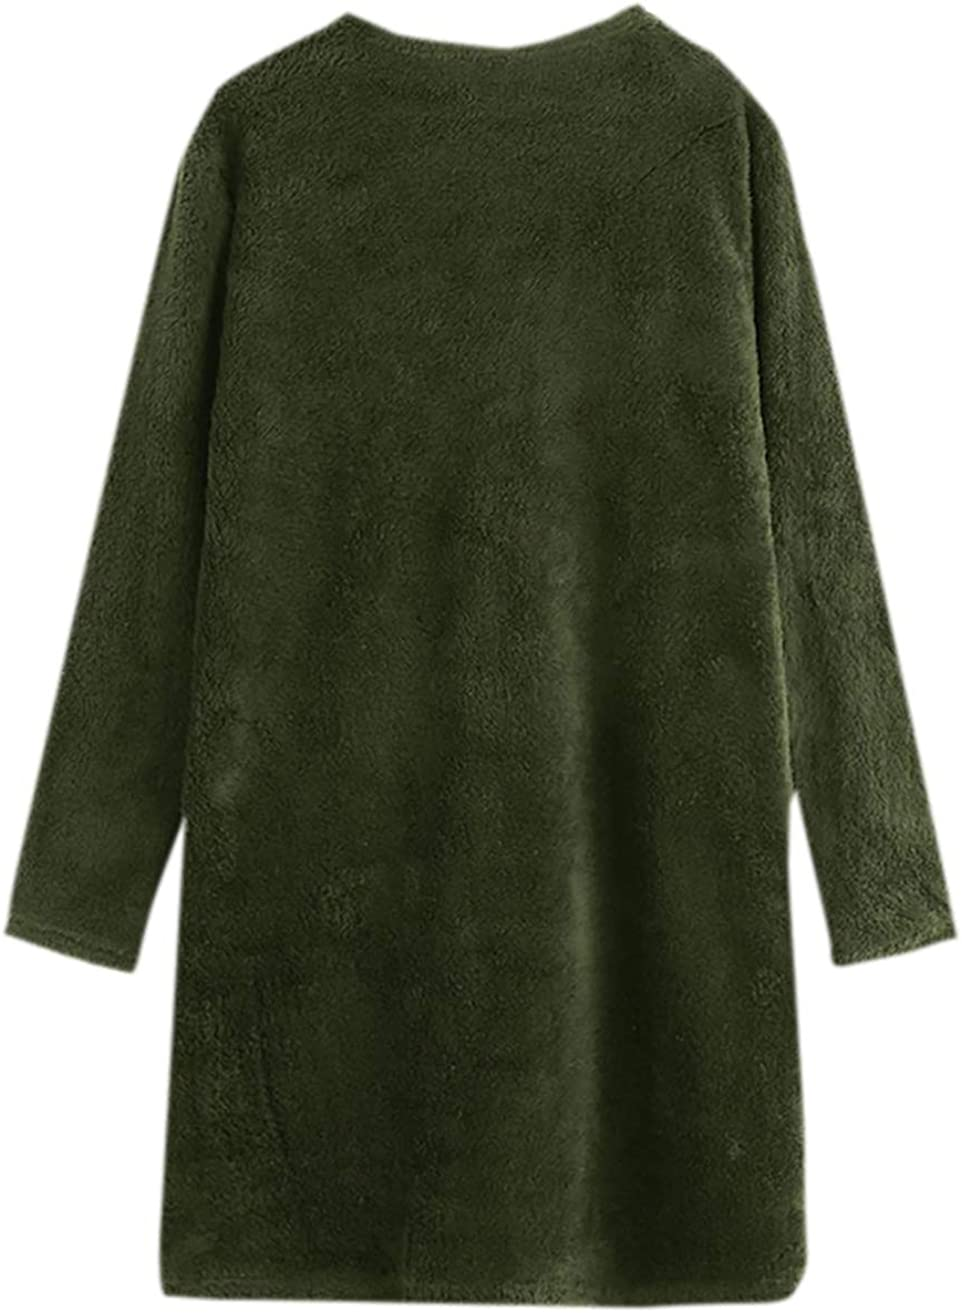 Milumia Womens Faux Fur Open Front Teddy Long Trench Coat Cardigan Outerwear Jacket with Pocket Army Green X-Large